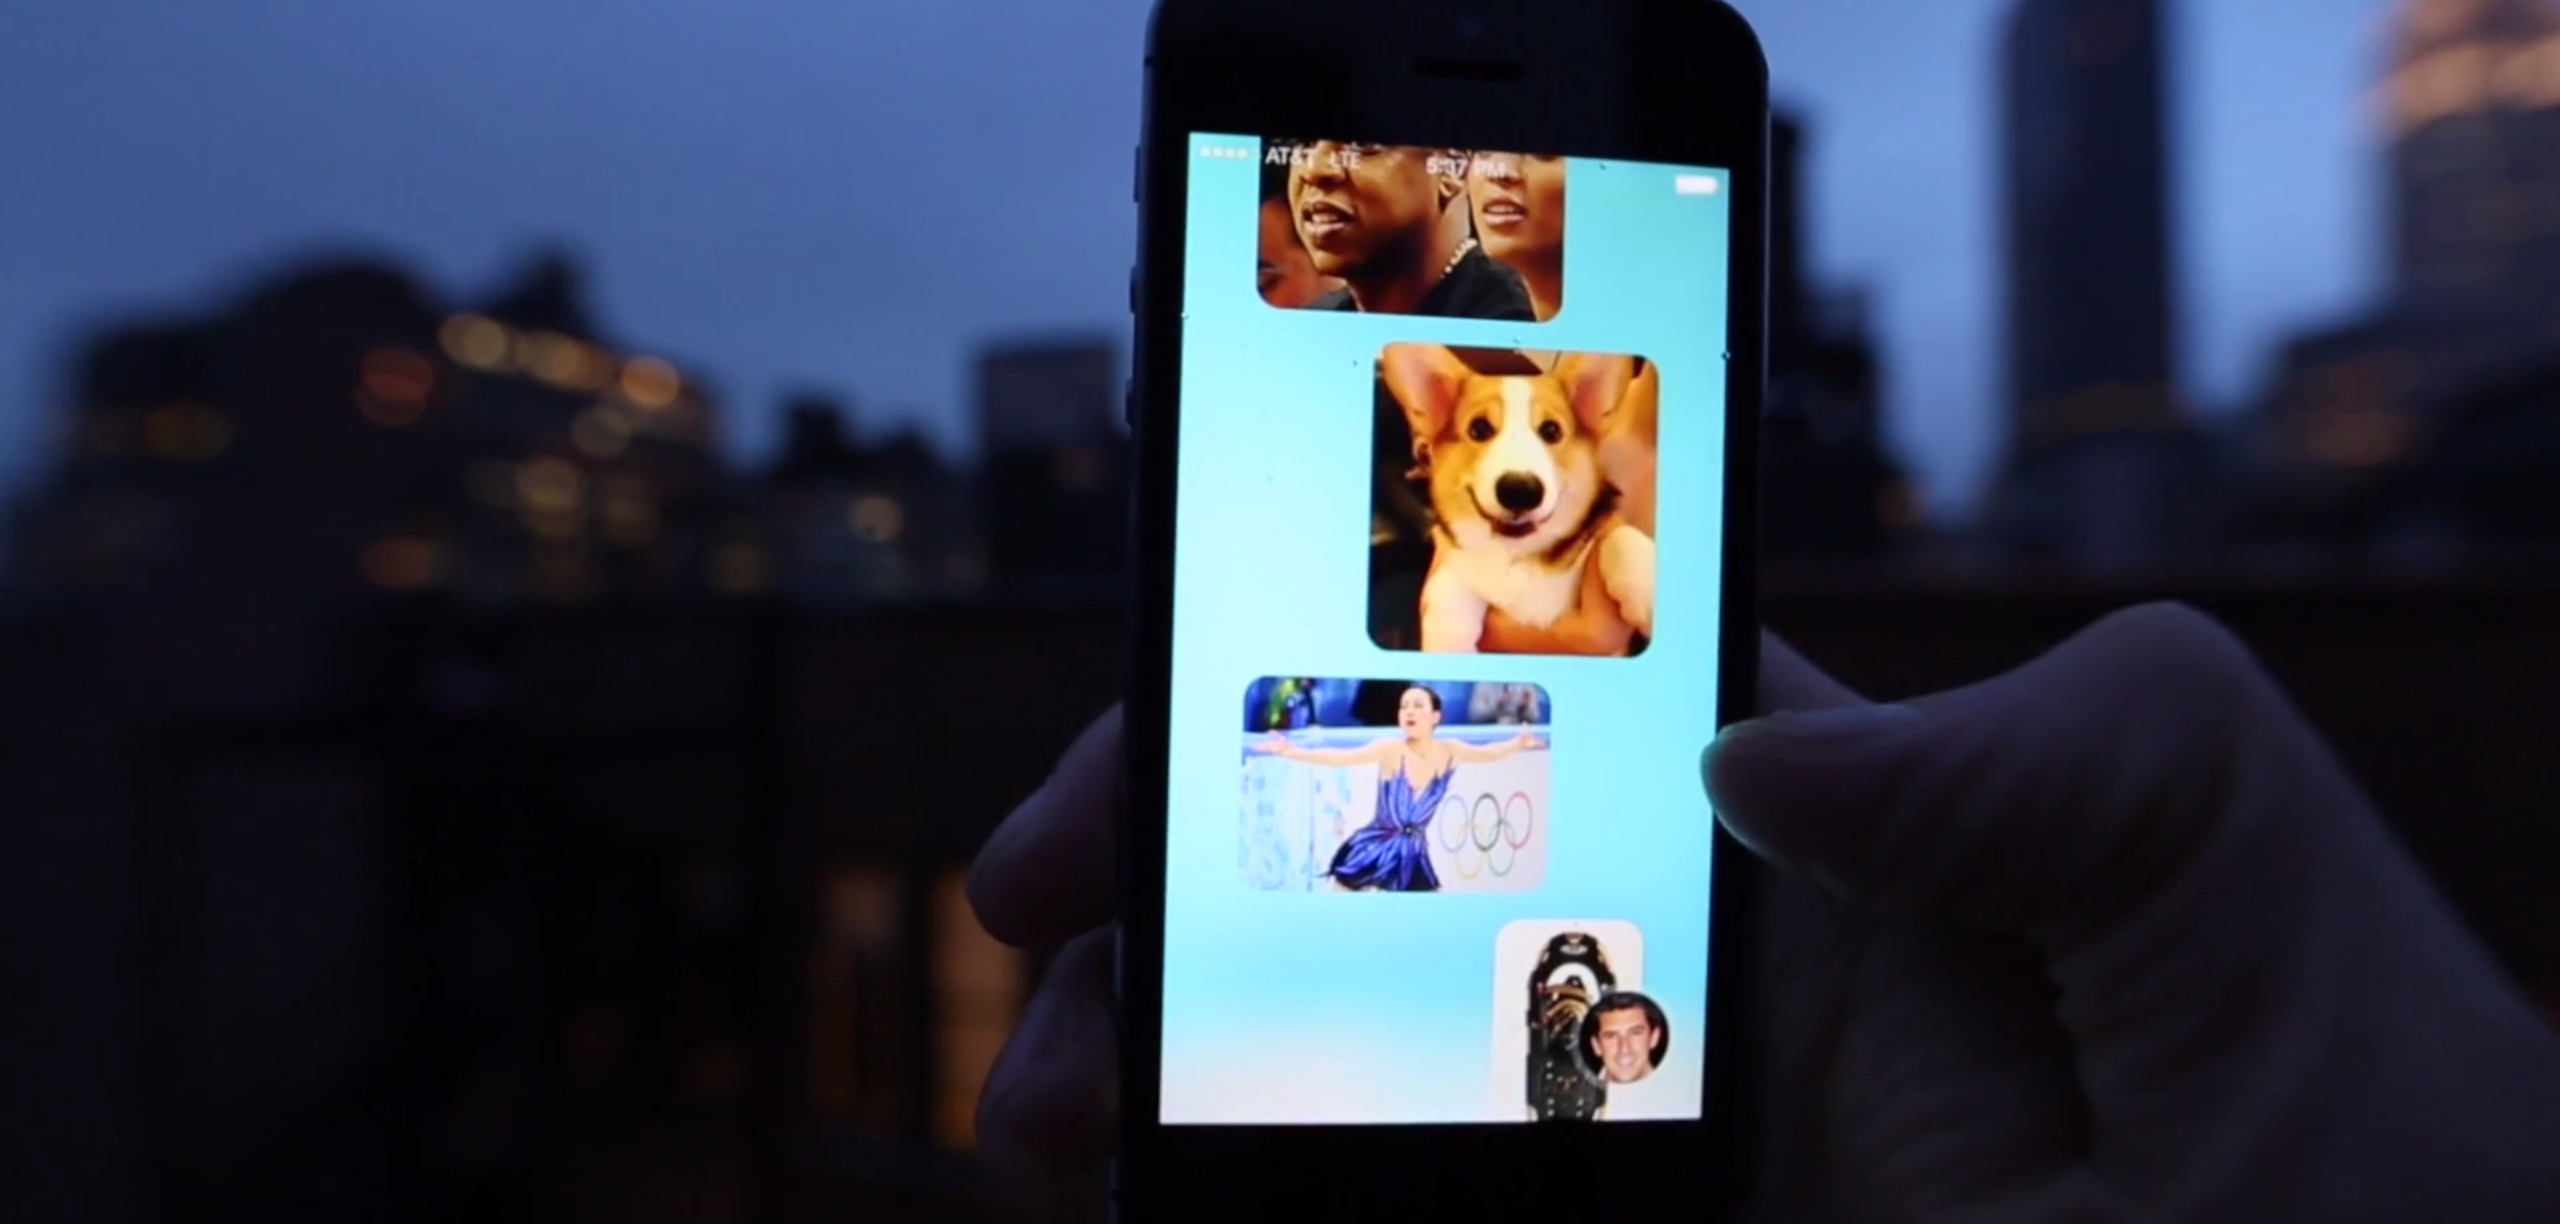 Stream Web for iOS is a Social, Gesture-Based Internet Browser App